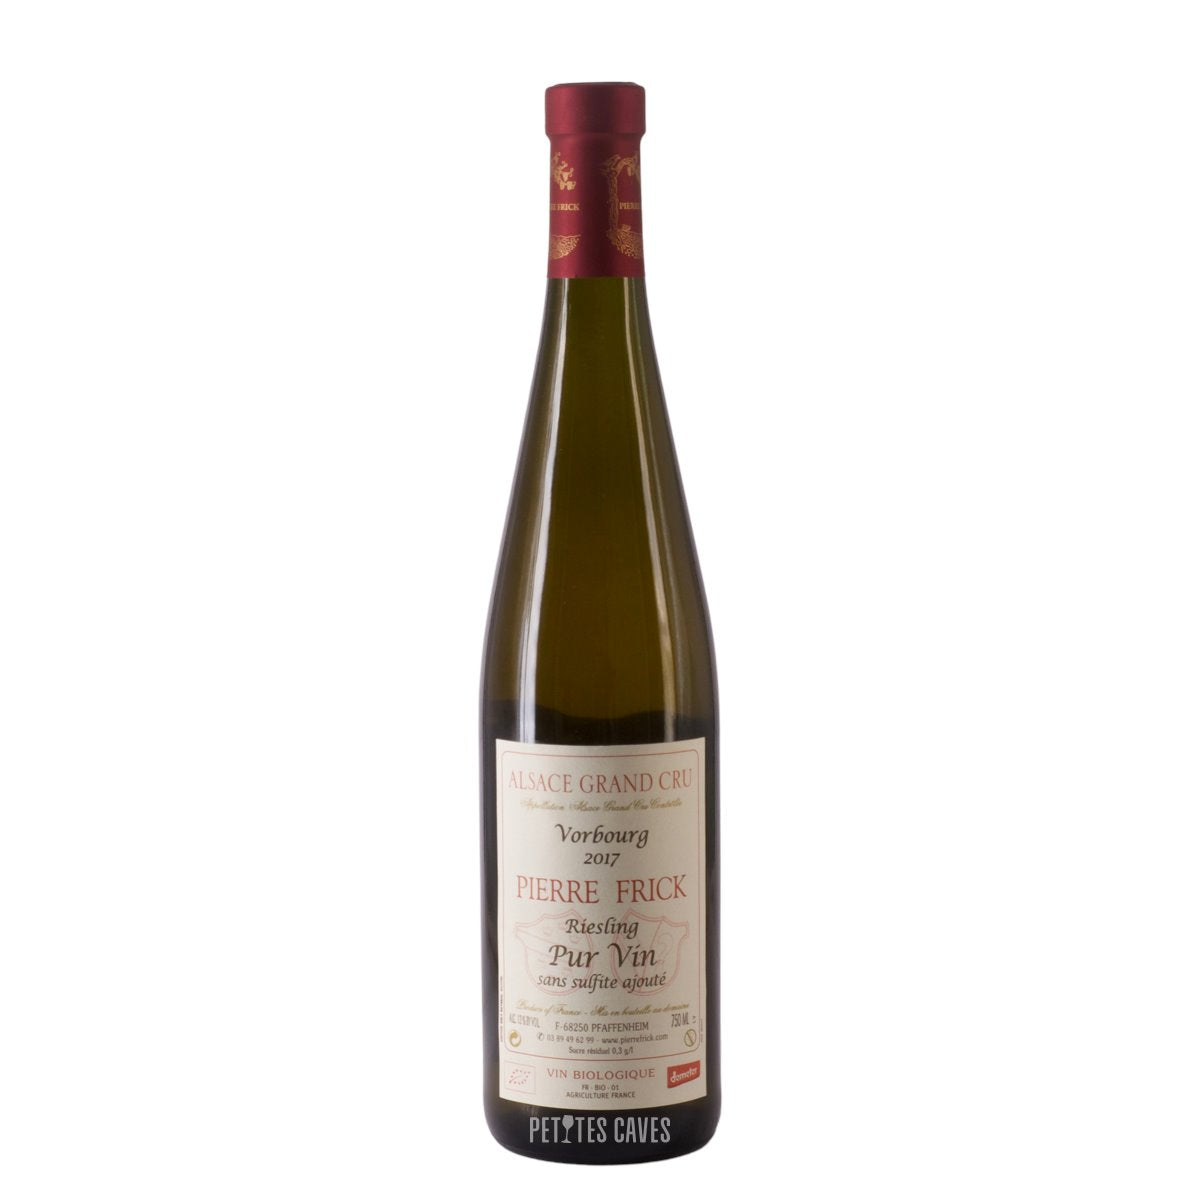 Riesling Grand Cru Vorbourg